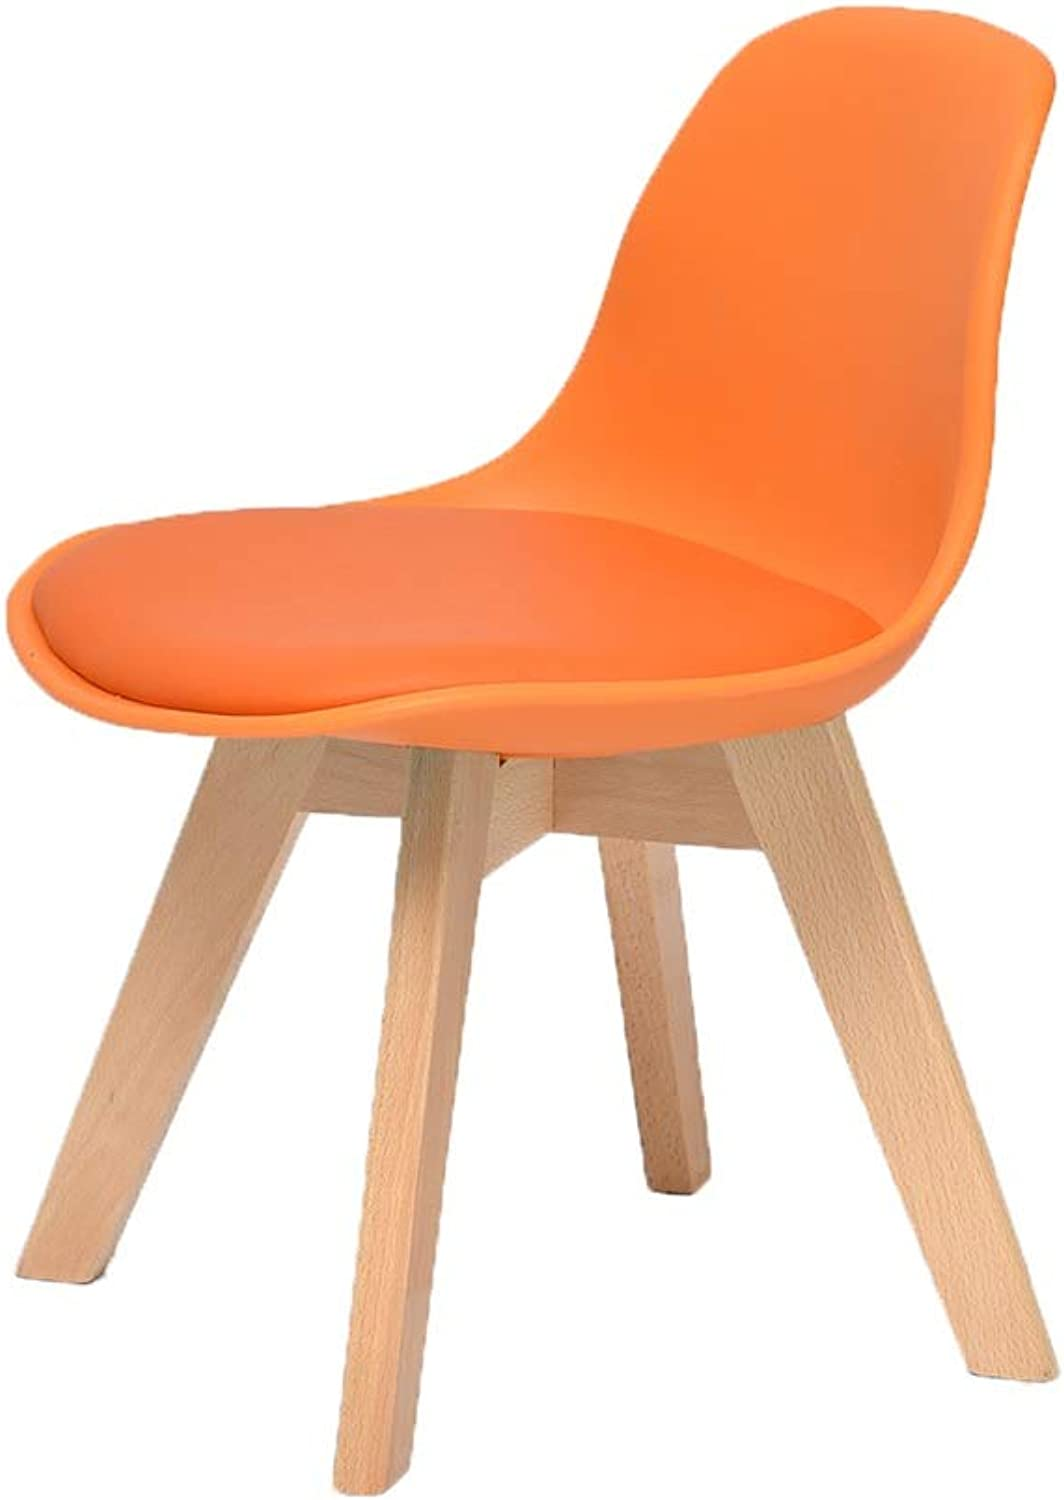 ZHAOYONGLI Footstools,Otools Solid Wood Chair Home Learning Desk Chair Backrest Small Stool (color   orange, Size   42  38  55cm)